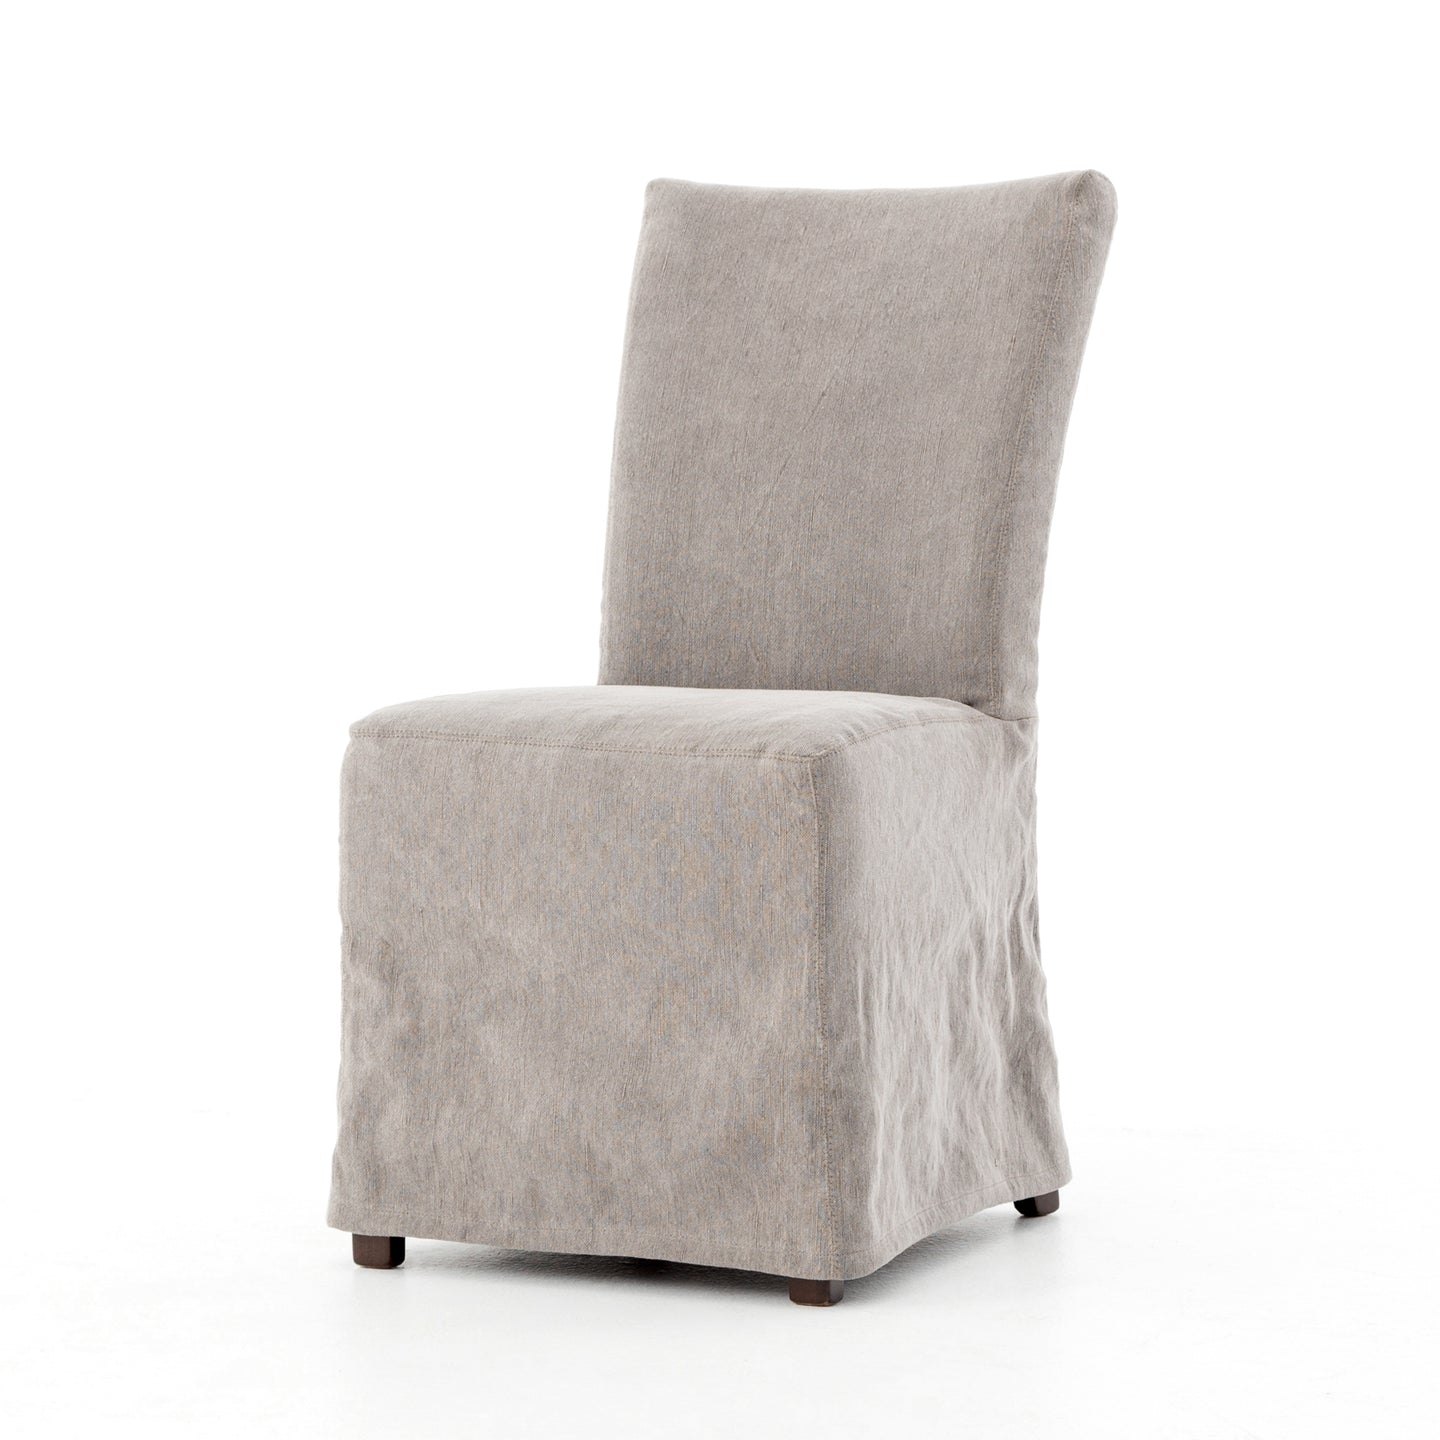 Surprising Four Hands Vista Dining Chair Heather Twill Carbon Alphanode Cool Chair Designs And Ideas Alphanodeonline